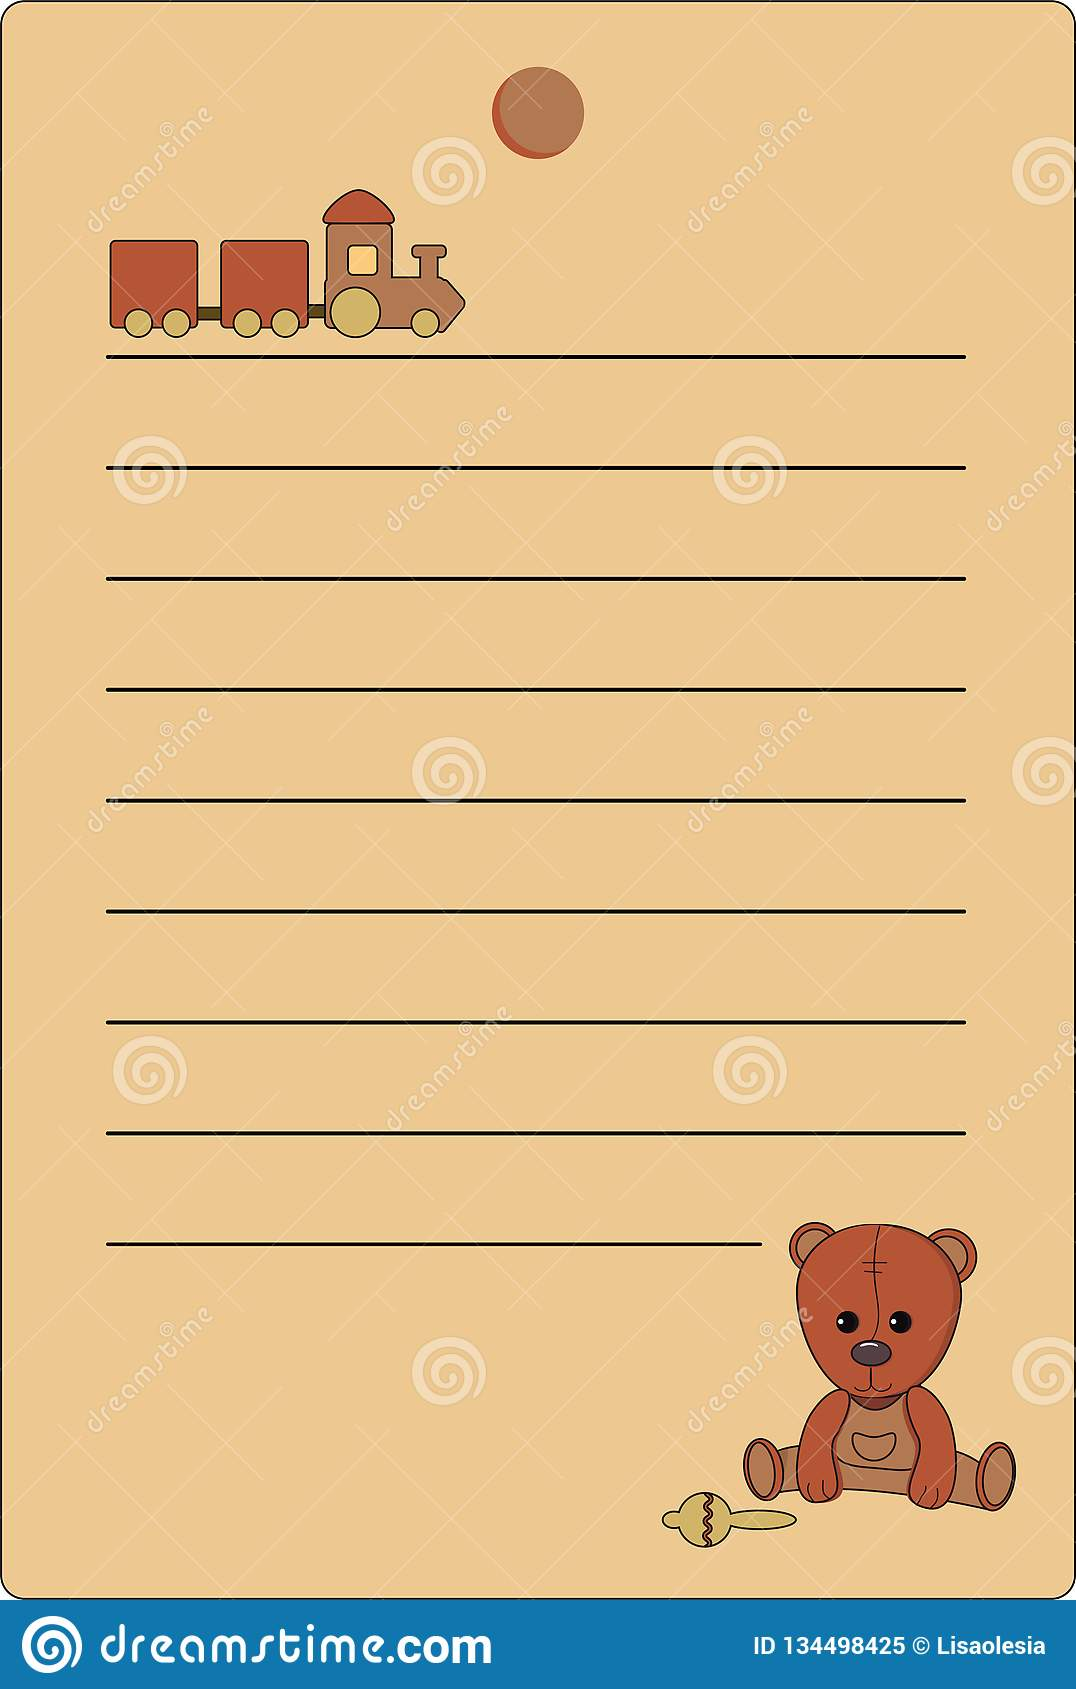 Tag with a teddy bear and a train of natural brown colors